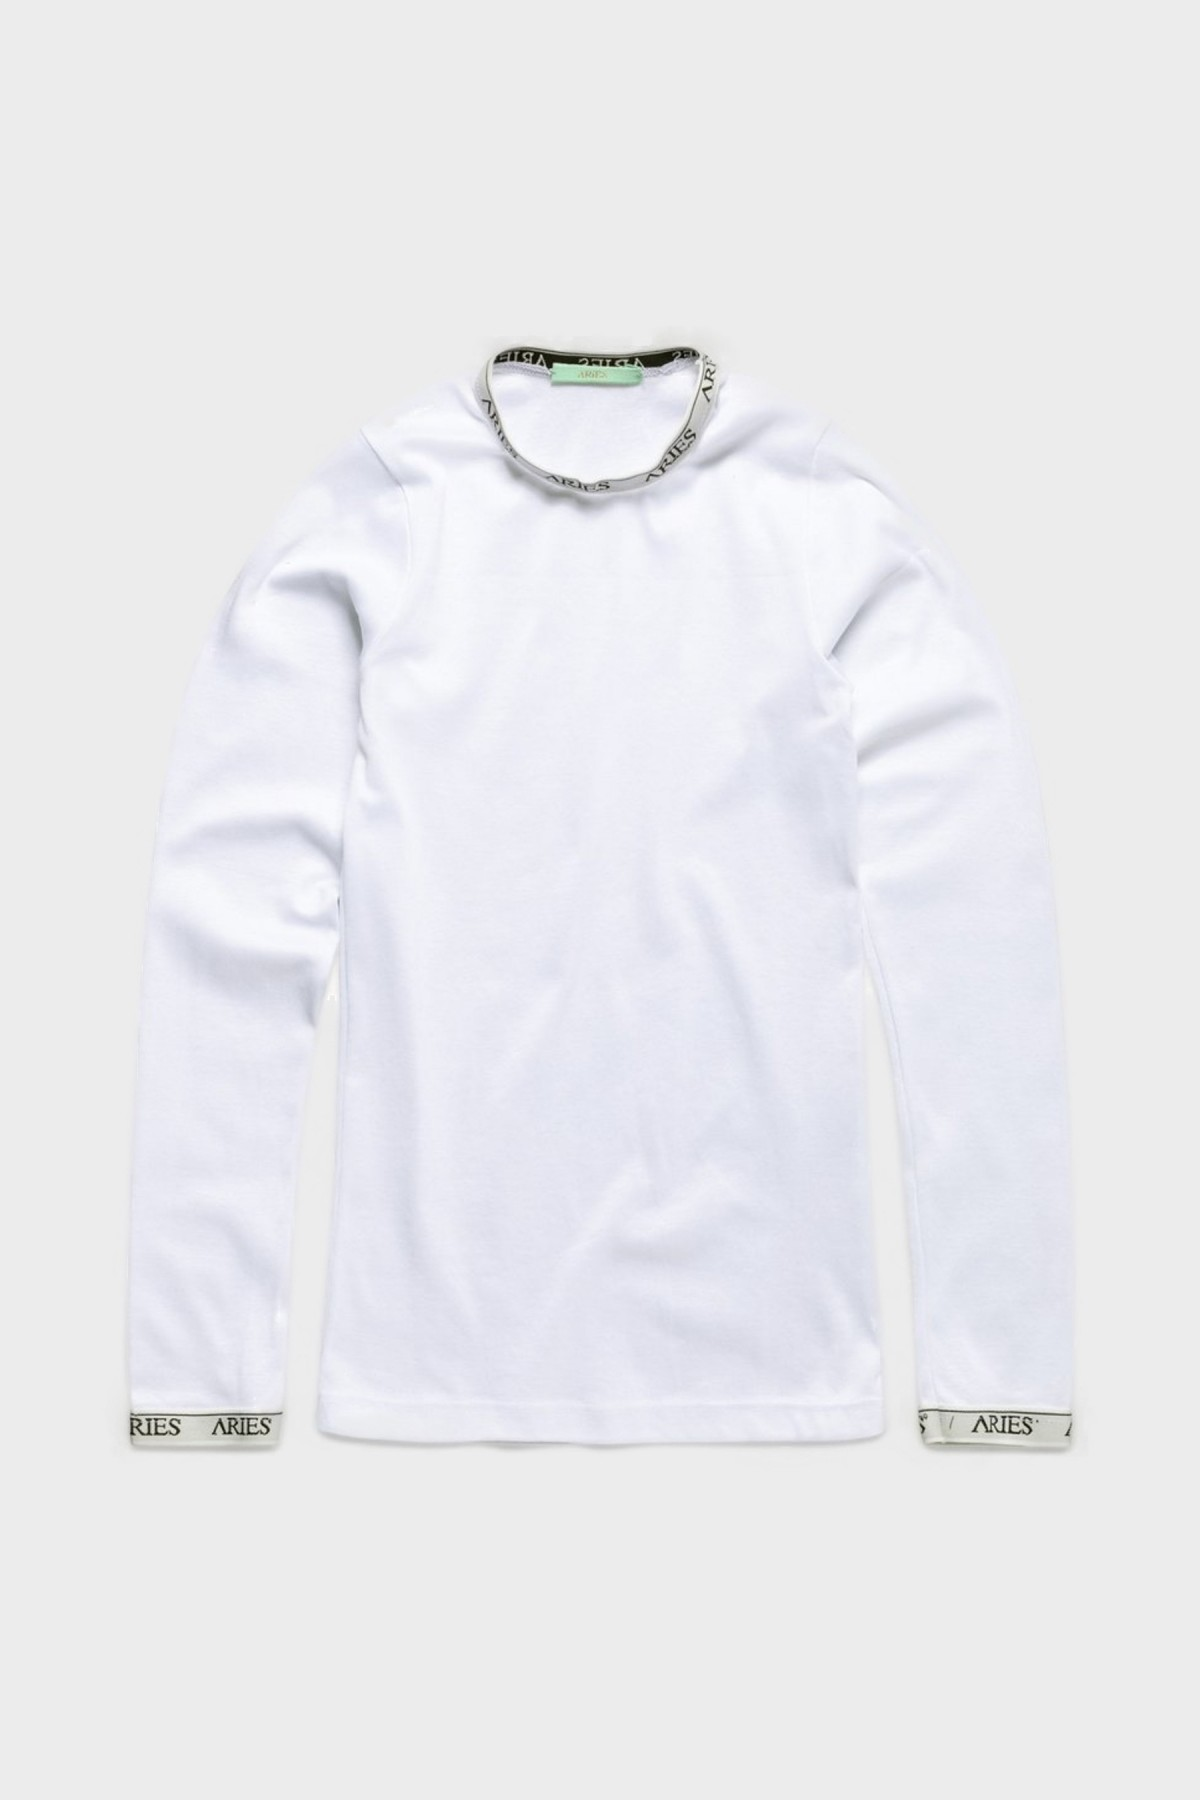 Aries Arise Cotton LS Top in White